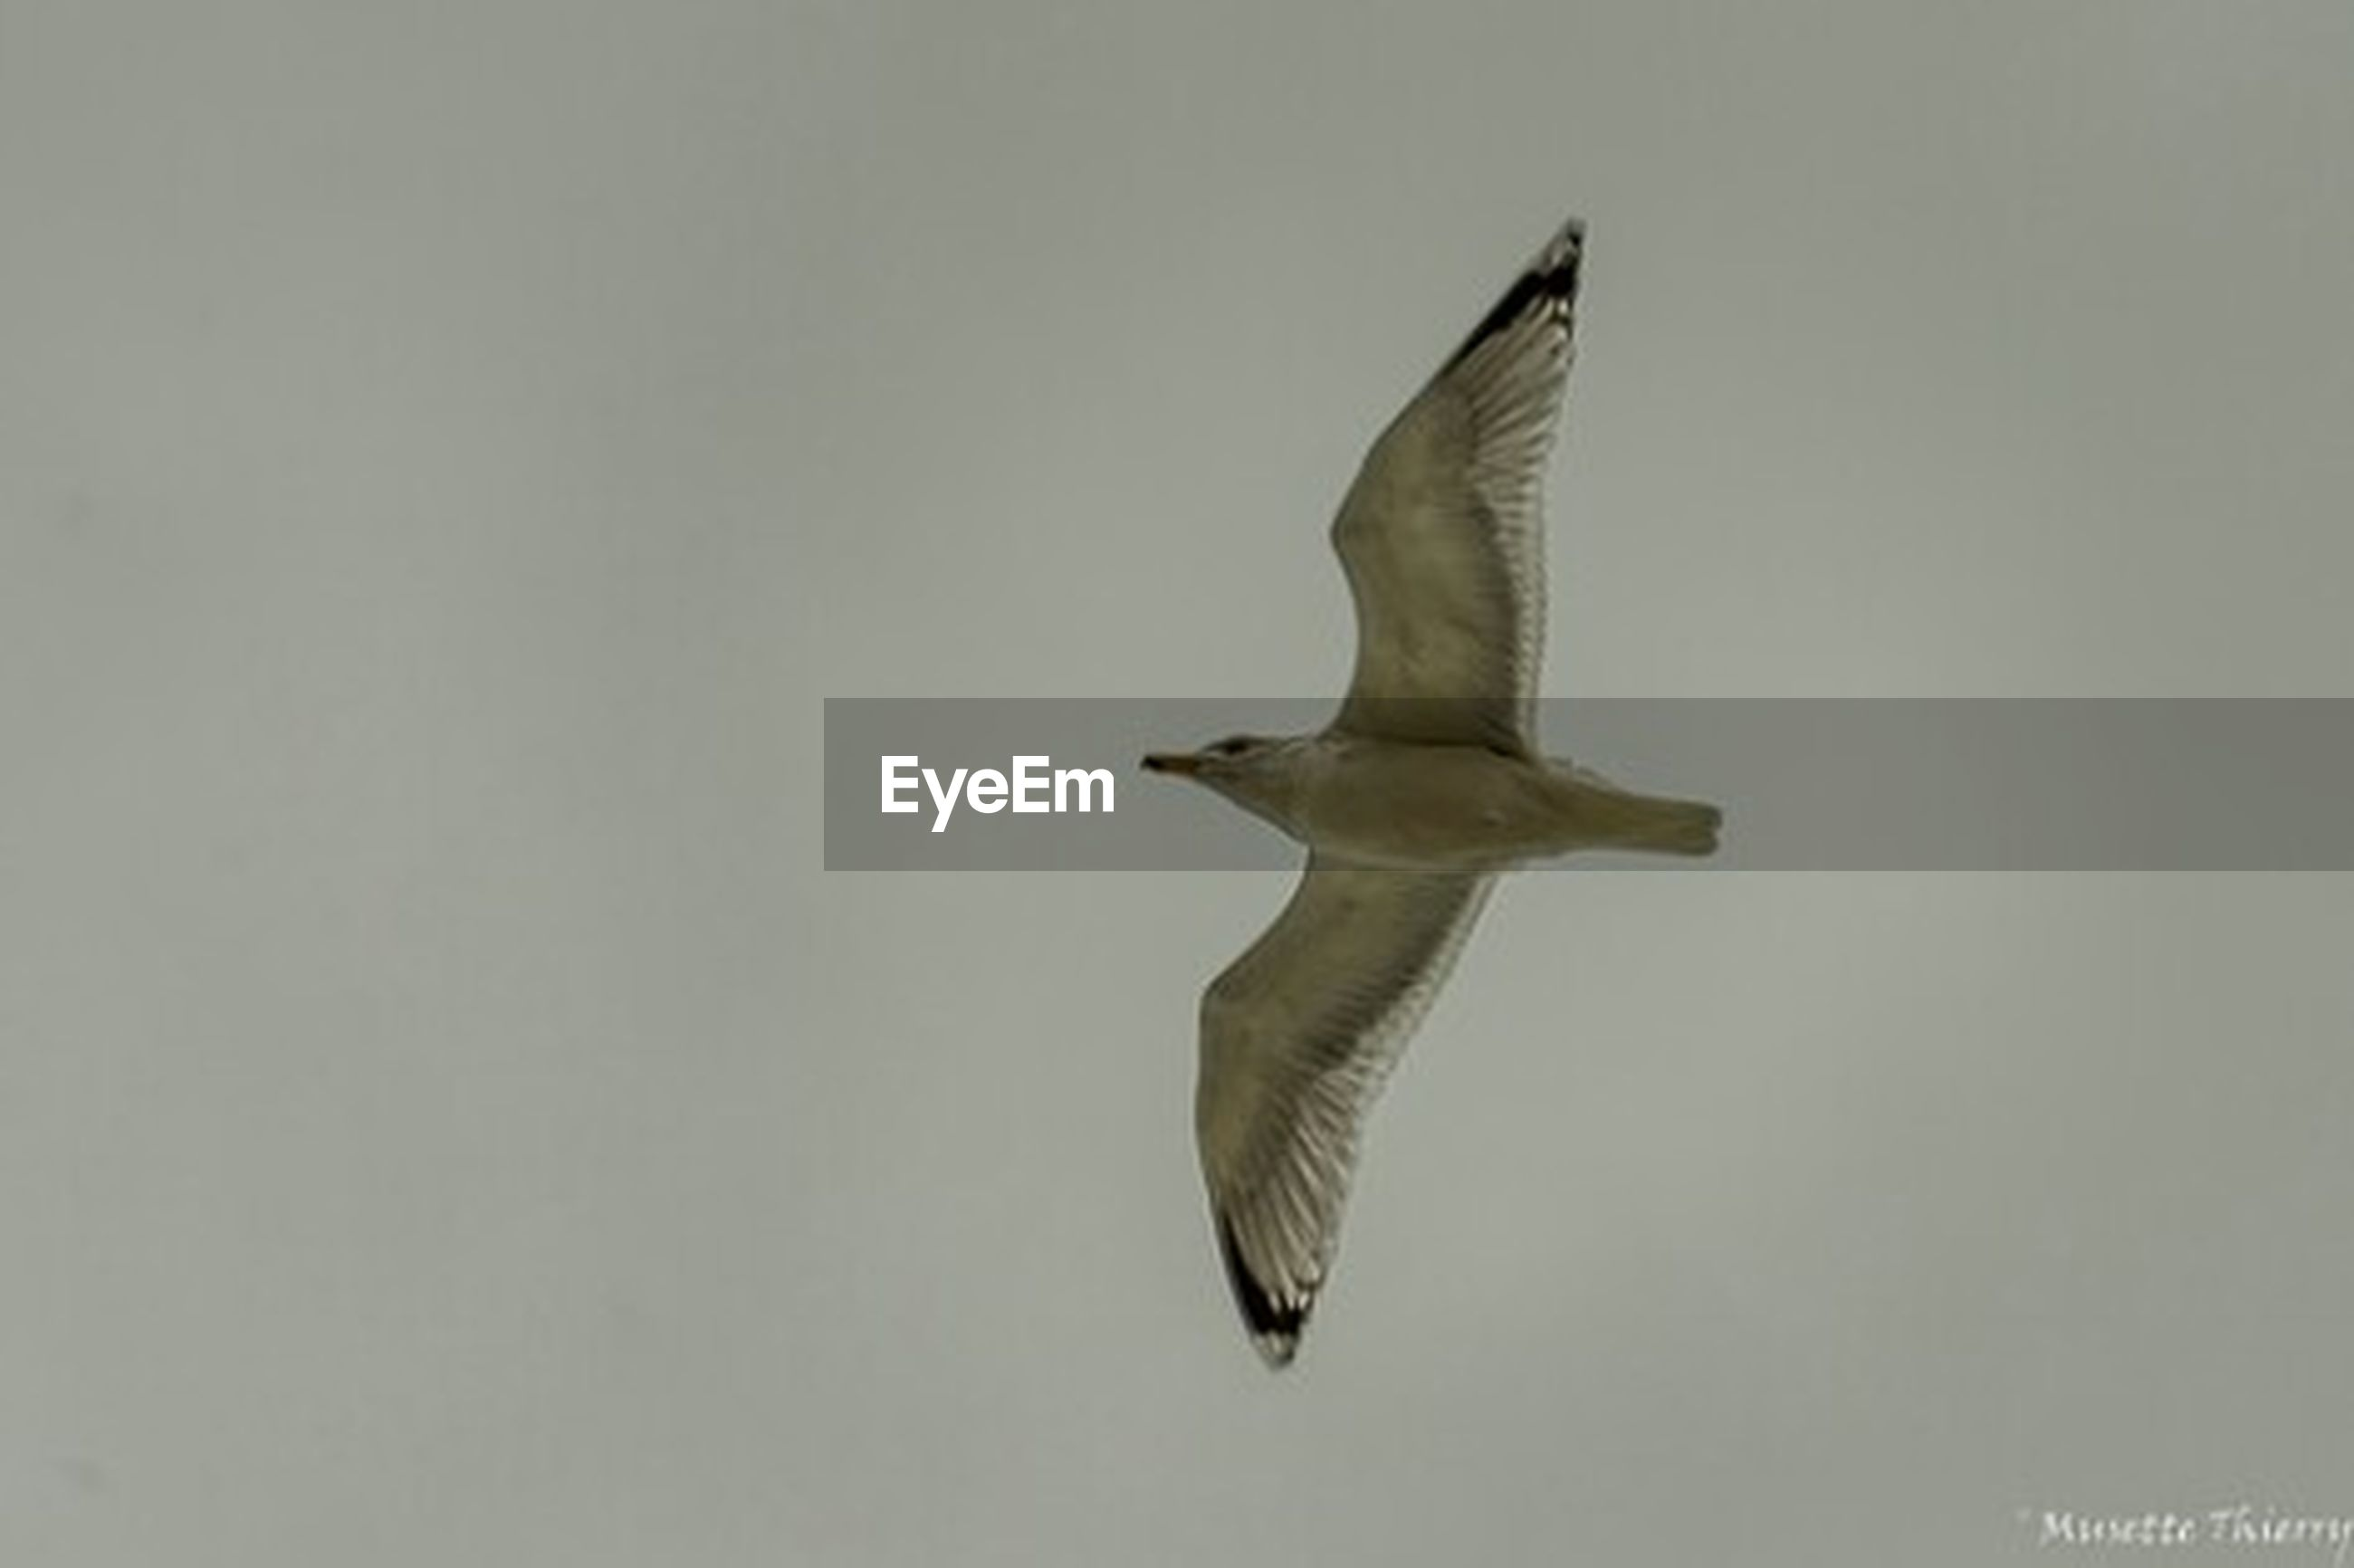 bird, animal themes, flying, animals in the wild, one animal, spread wings, wildlife, clear sky, copy space, seagull, mid-air, low angle view, nature, full length, motion, flight, day, zoology, no people, outdoors